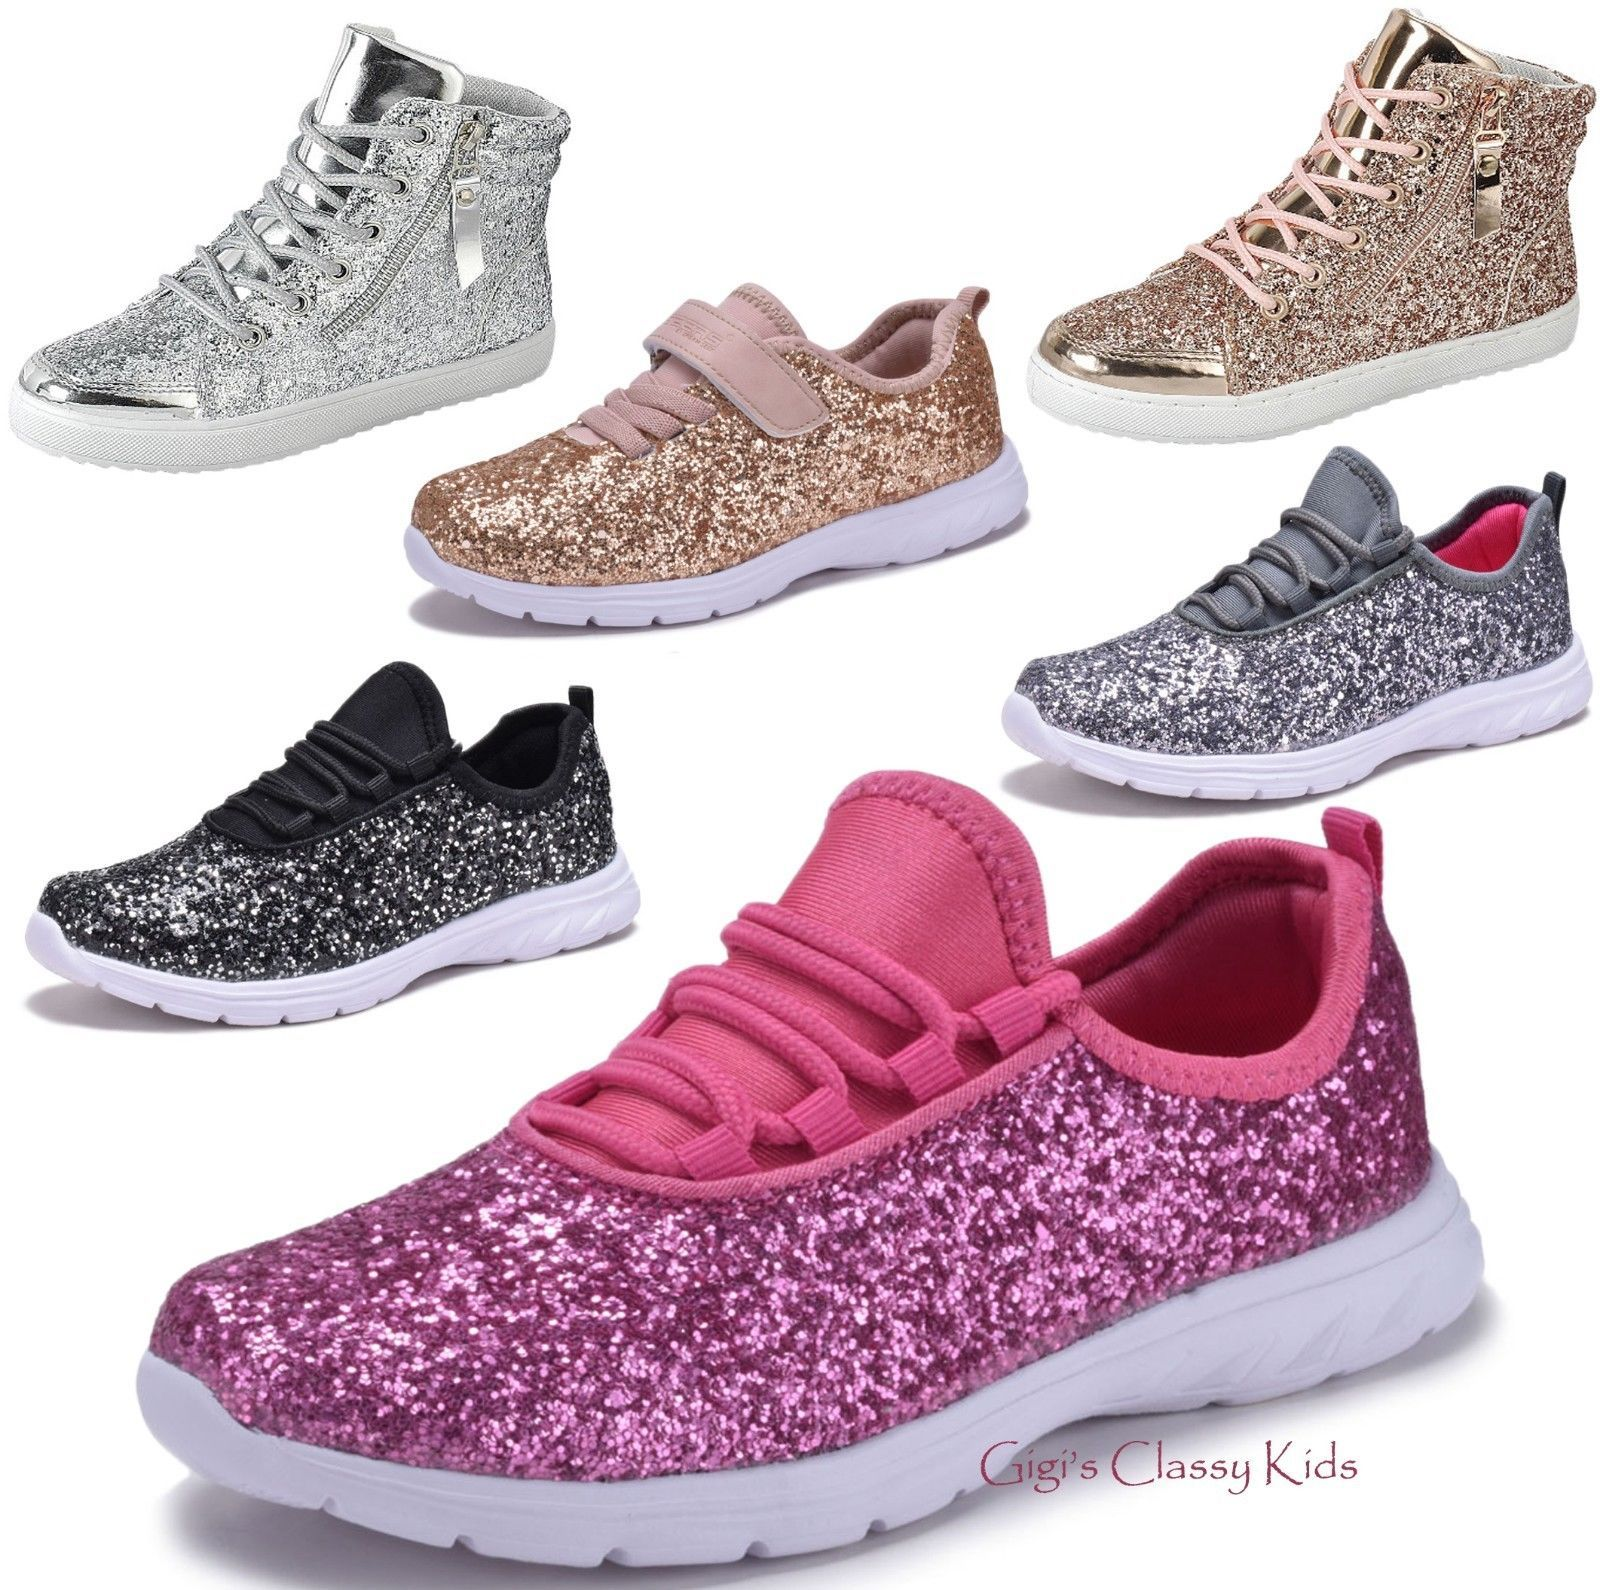 Girls Shoes 57974  Fashion Youth Kids Girls Sequins Glitter Sneakers Lace  Up Tennis Shoes High Top -  BUY IT NOW ONLY   19.97 on  eBay  girls  shoes  ... cf6ad2445642